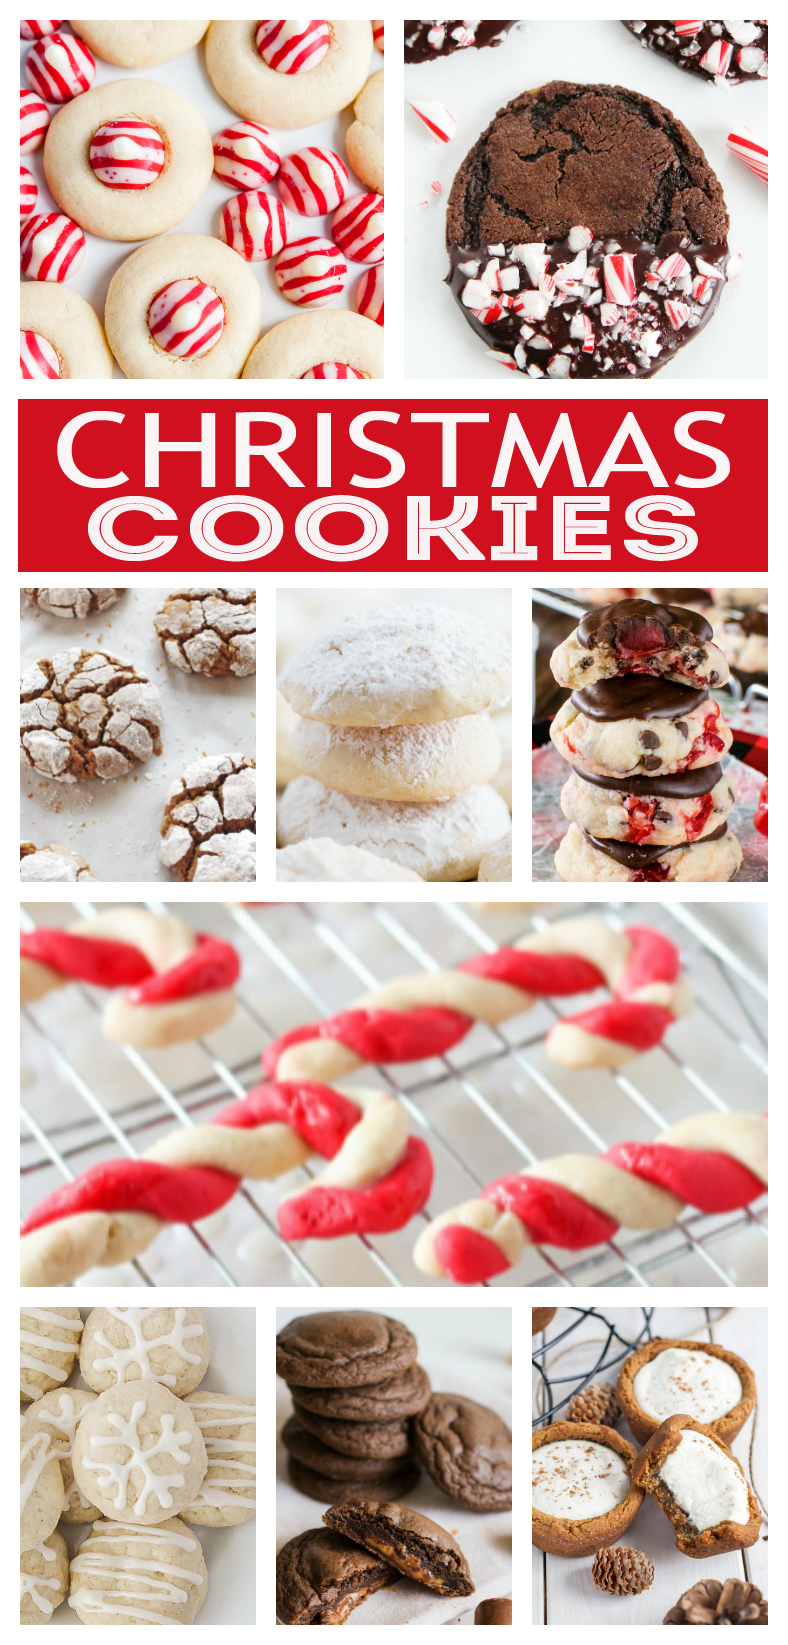 Over 25 of The Best Christmas Cookies | Cookie recipes that are perfect for Cookie Exchanges and delivering to your friends and neighbors!